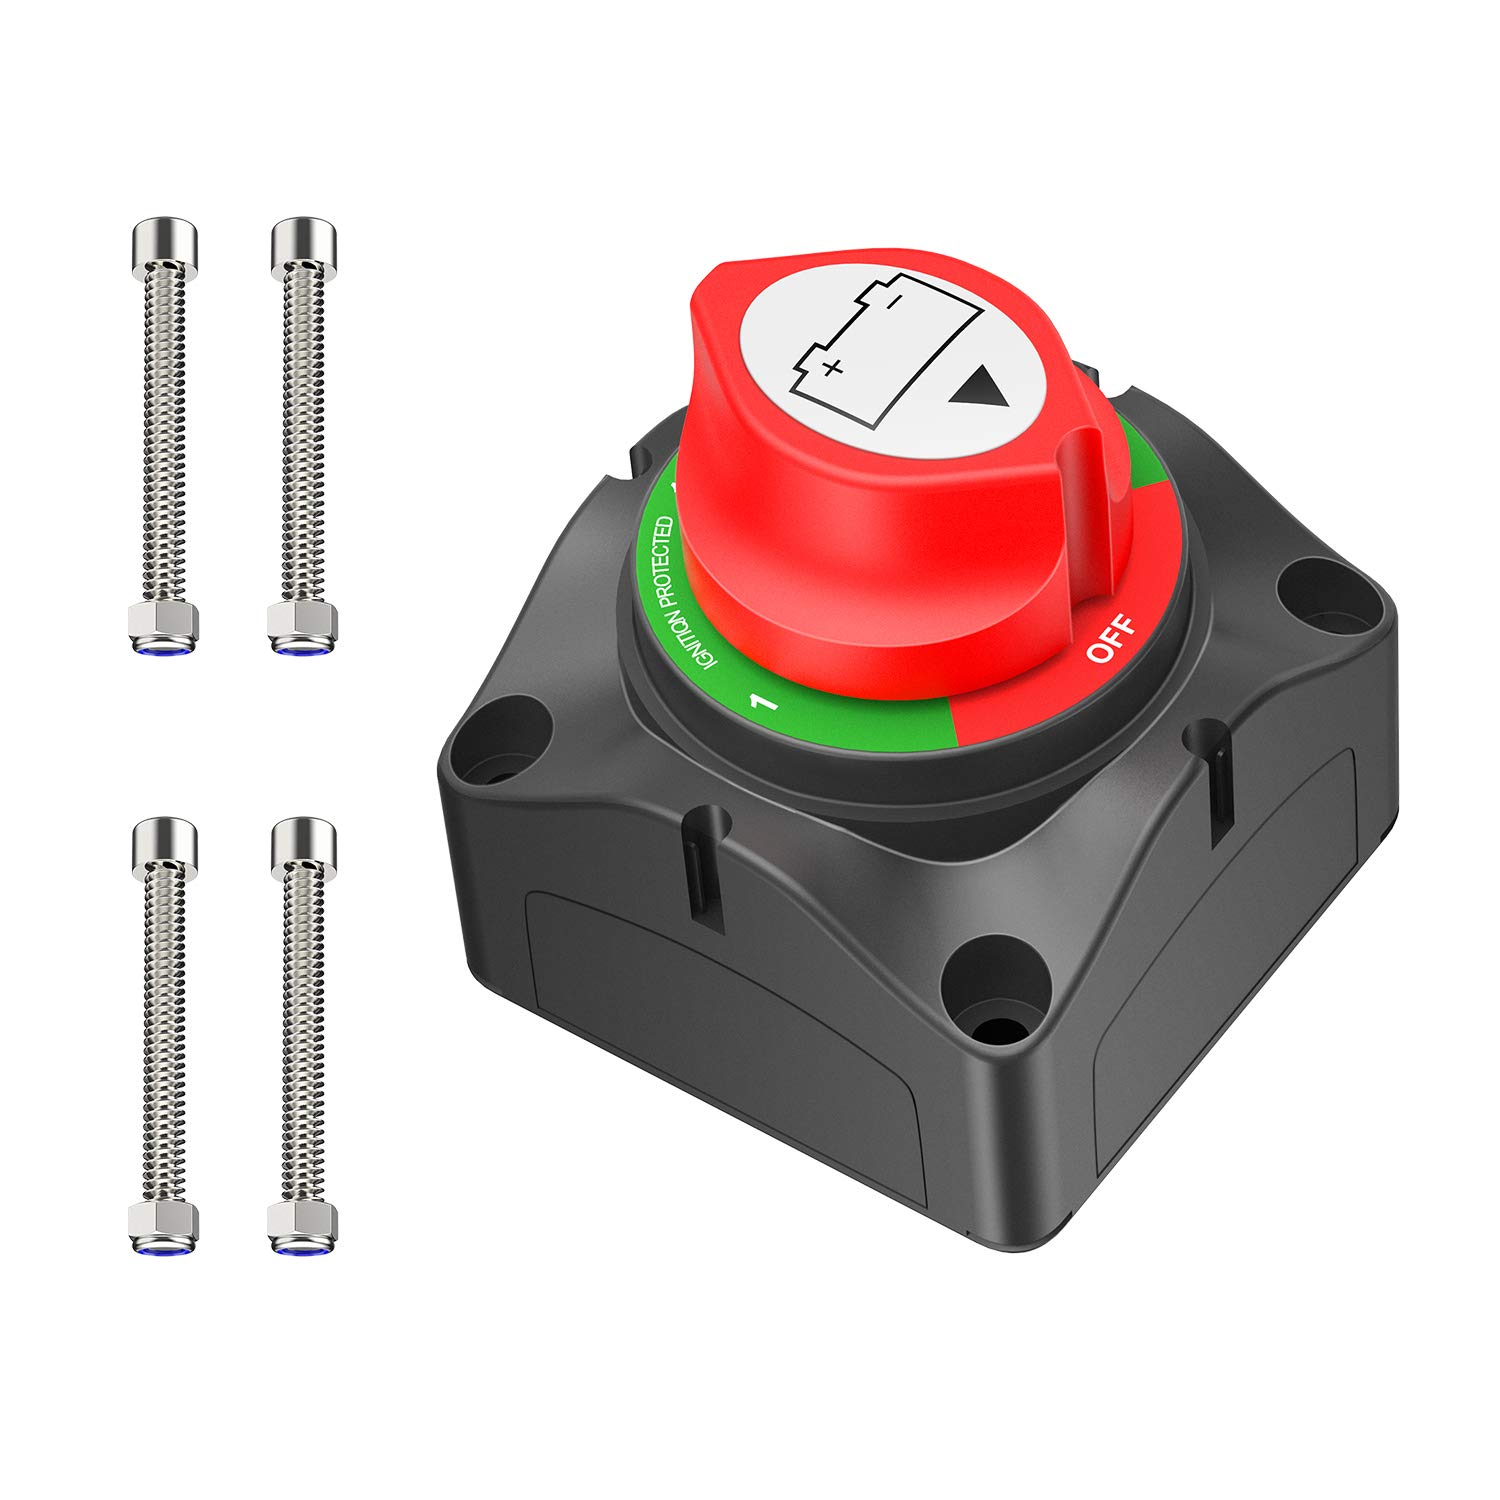 Nilight 1-2-Both-Off Battery Switch, 12V-48V Battery Disconnect Master Cutoff Switch for Marine Boat Car RV ATV UTV Vehicle, Waterproof Heavy Duty Battery Isolator Switch, 2 Years Warranty (90108A): Industrial & Scientific